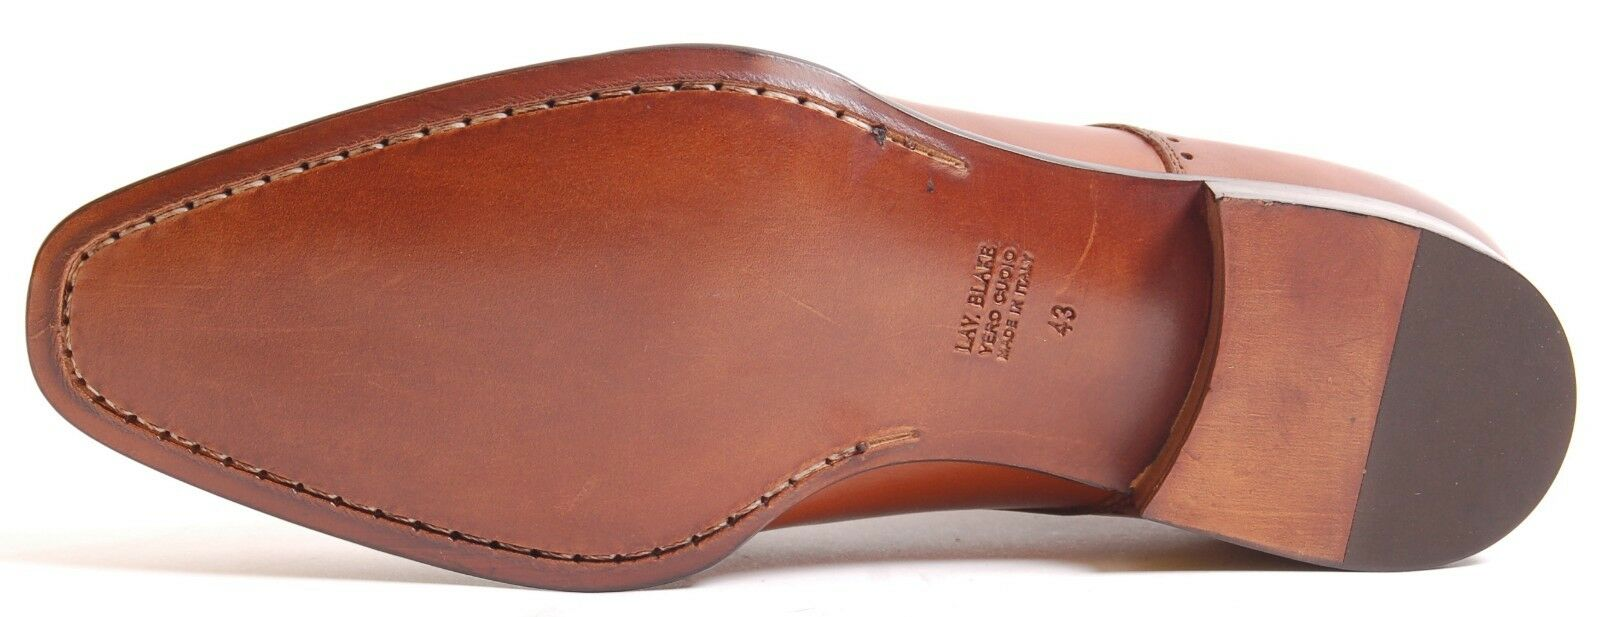 Acc Hand Made Italian Lace Up Plain Patina Real Leather 1735